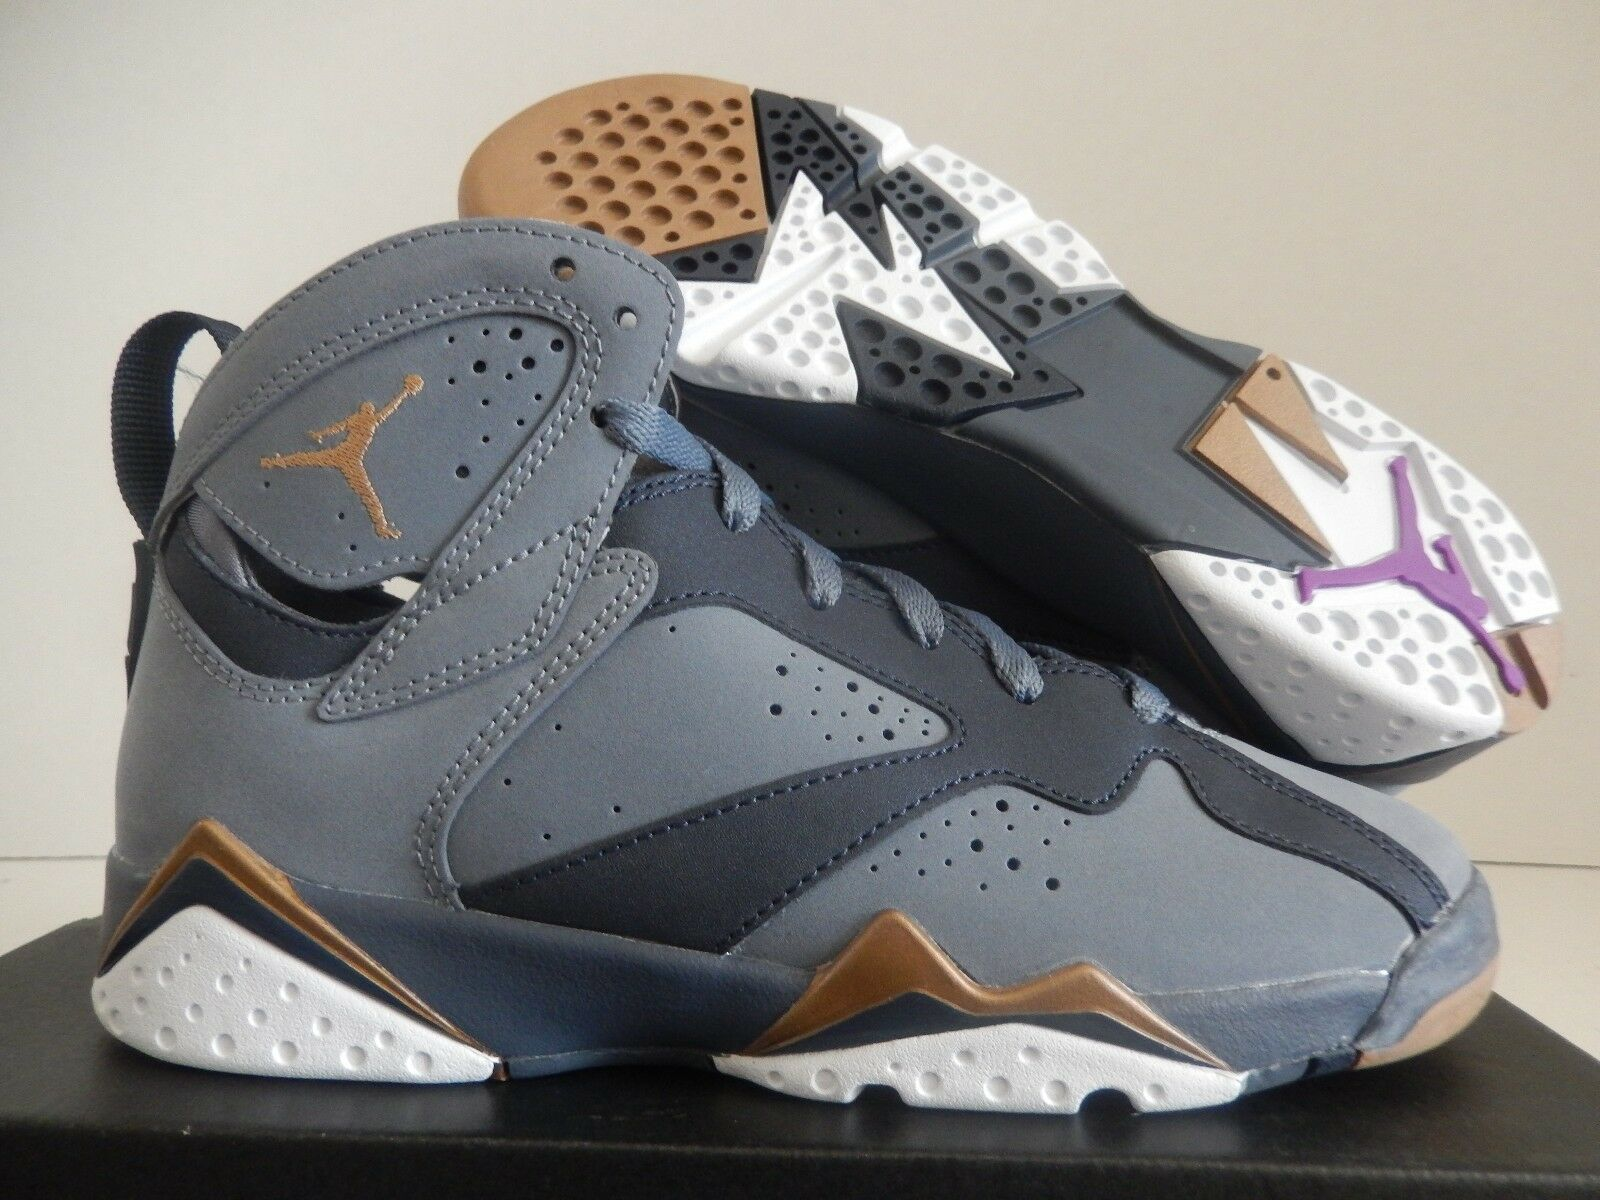 NIKE AIR JORDAN 7 RETRO (GG) BLUE DUSK-GOLD SZ 5.5Y -WOMENS SZ 7 [442960-407]